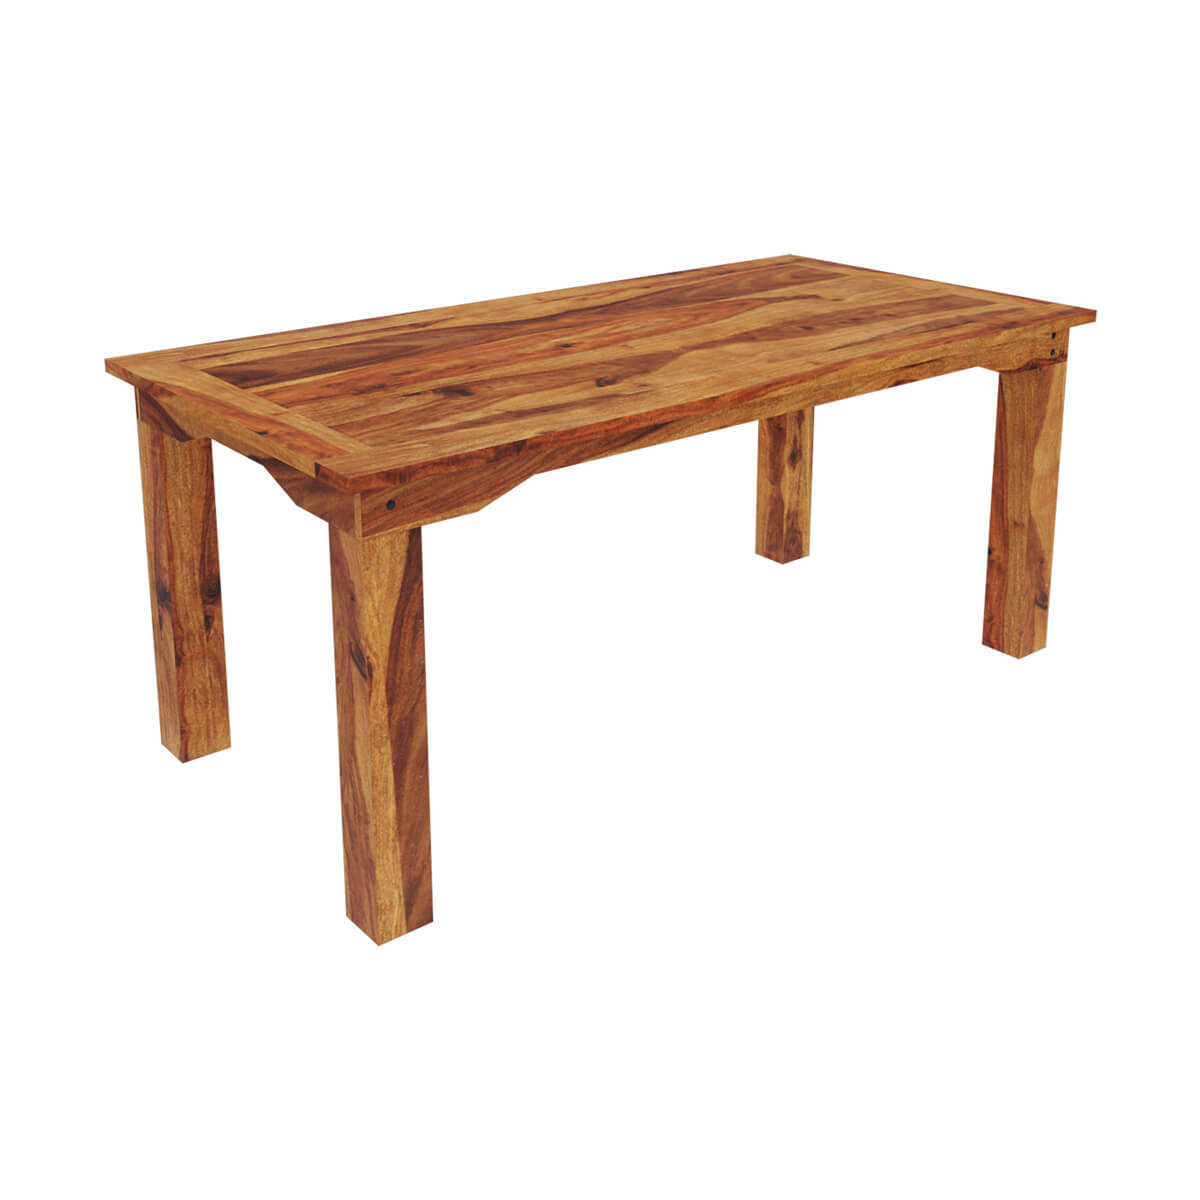 Modern Rustic Dining Table: Idaho Modern Rustic Solid Wood Dining Table